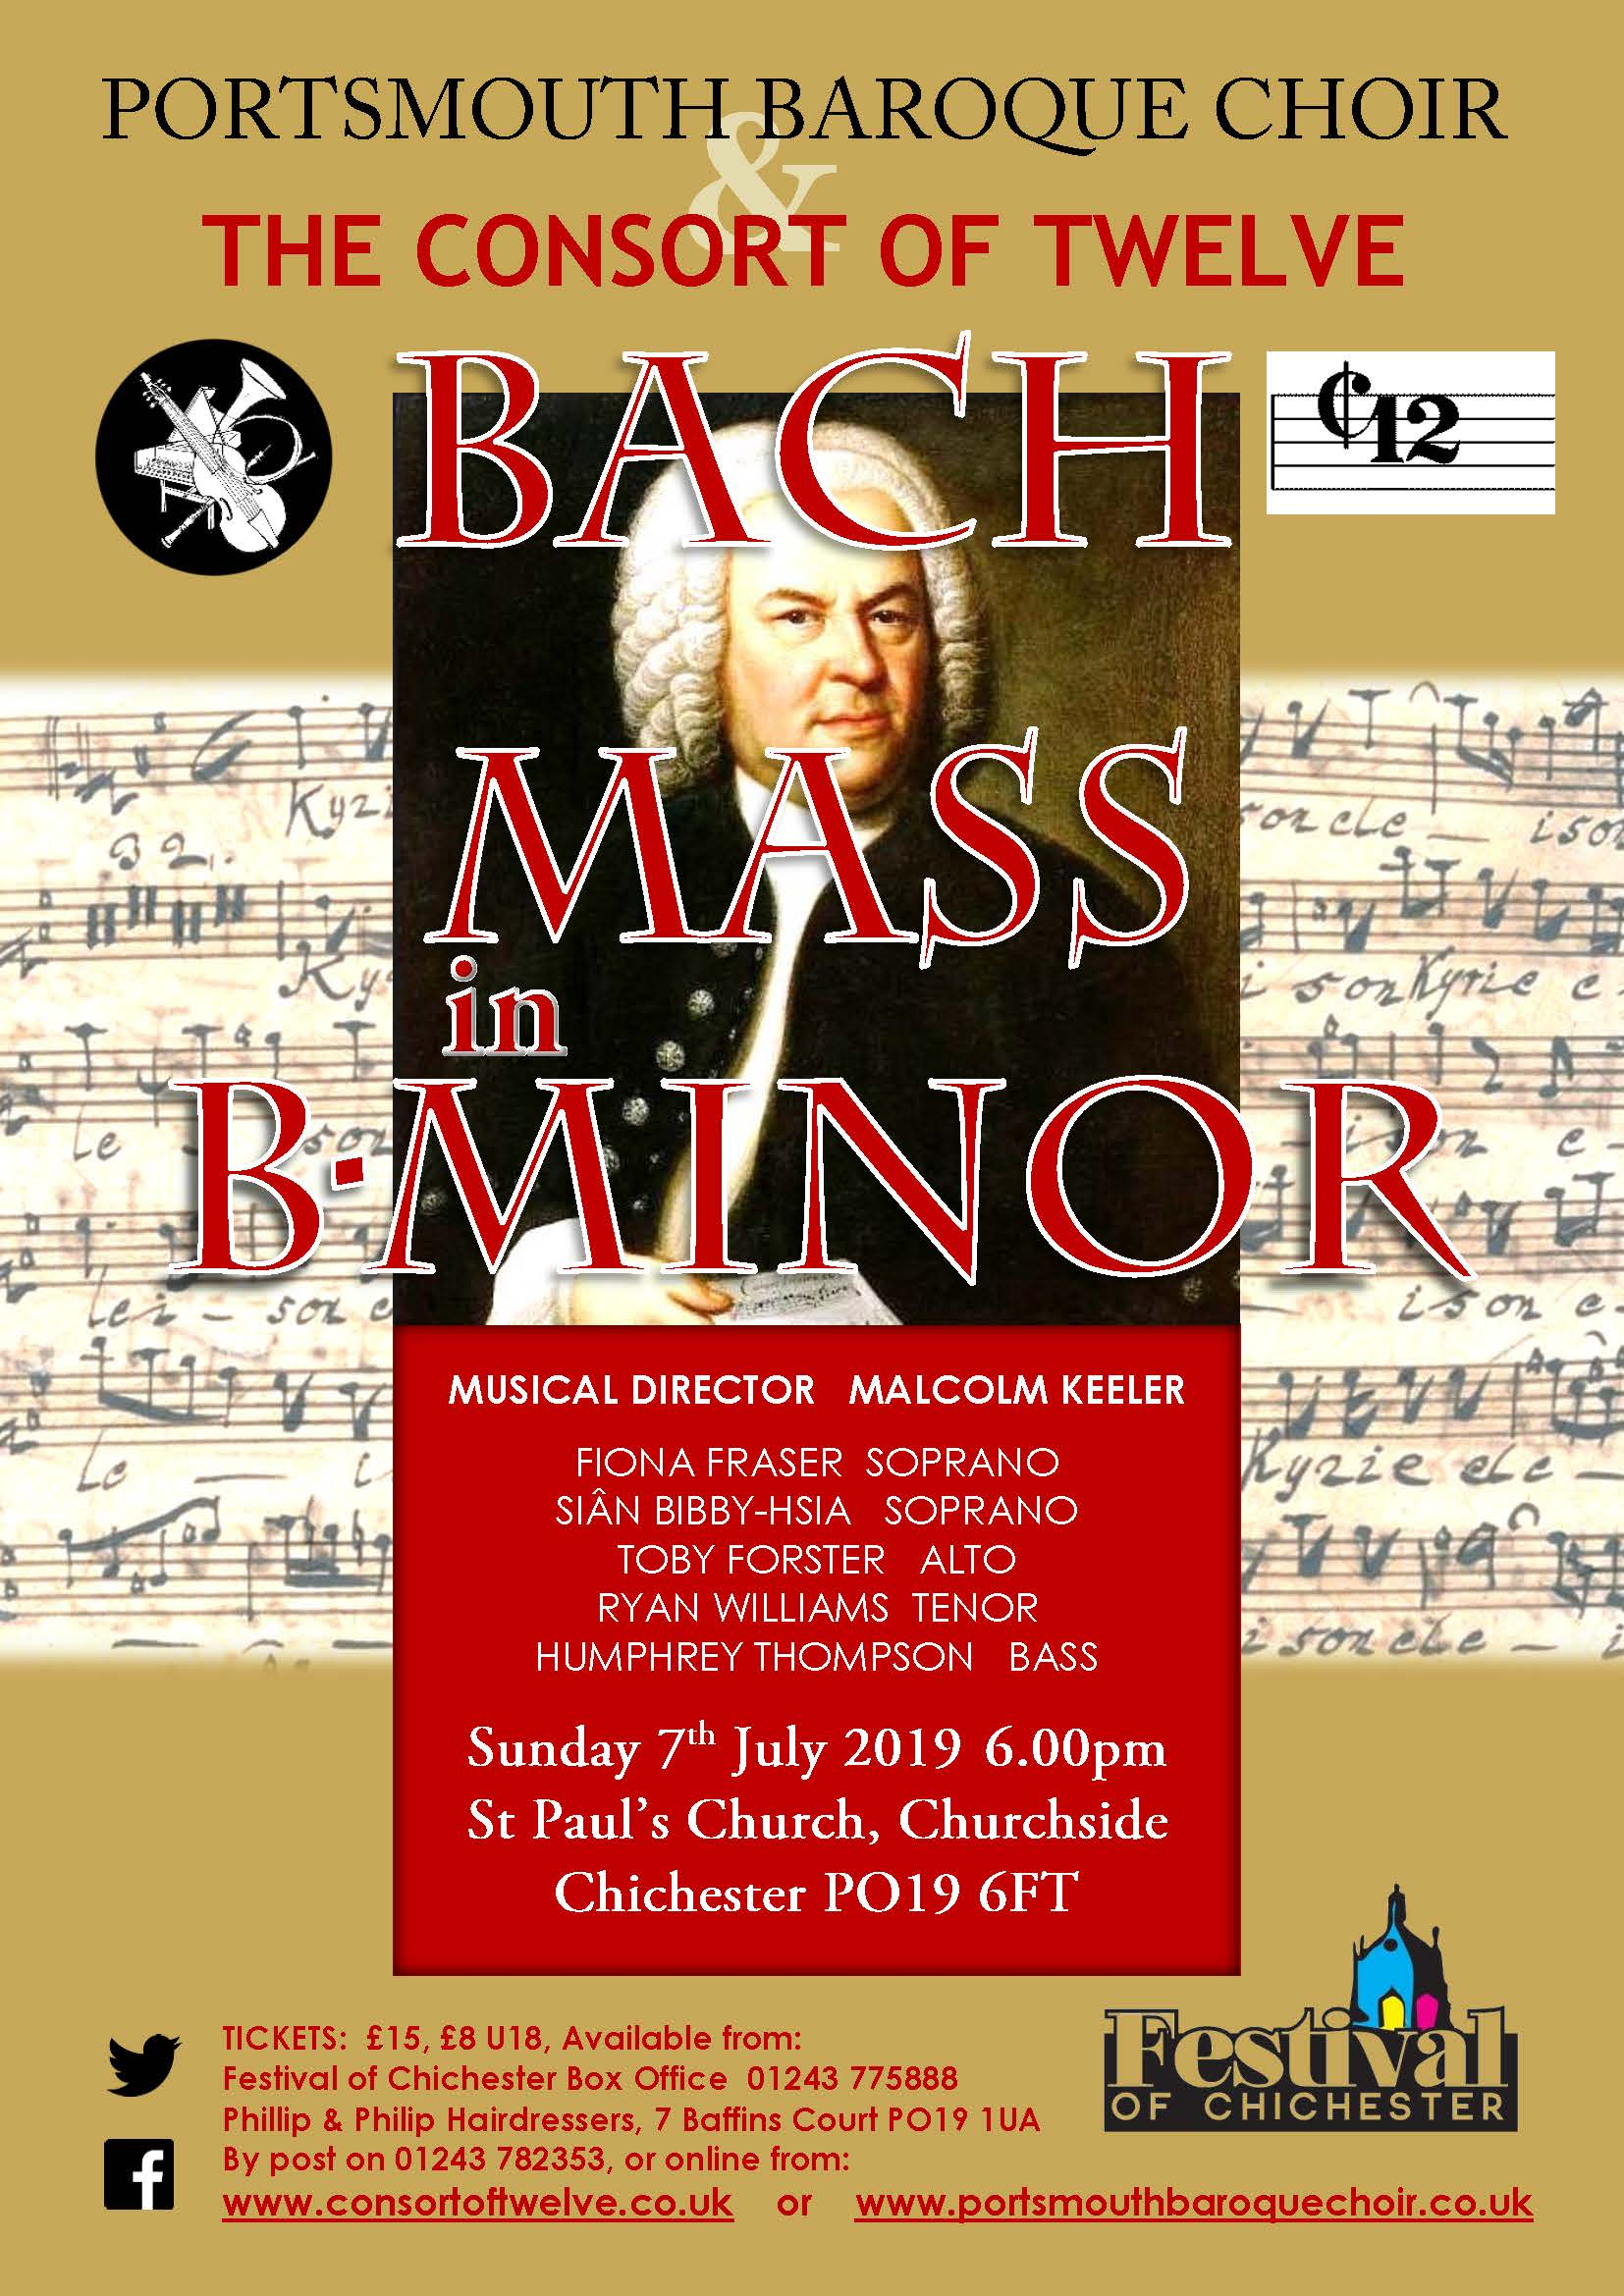 Portsmouth Baroque Choir & The Consort of Twelve - Bach Mass in B-Minor directed by Malcolm Keeler banner image